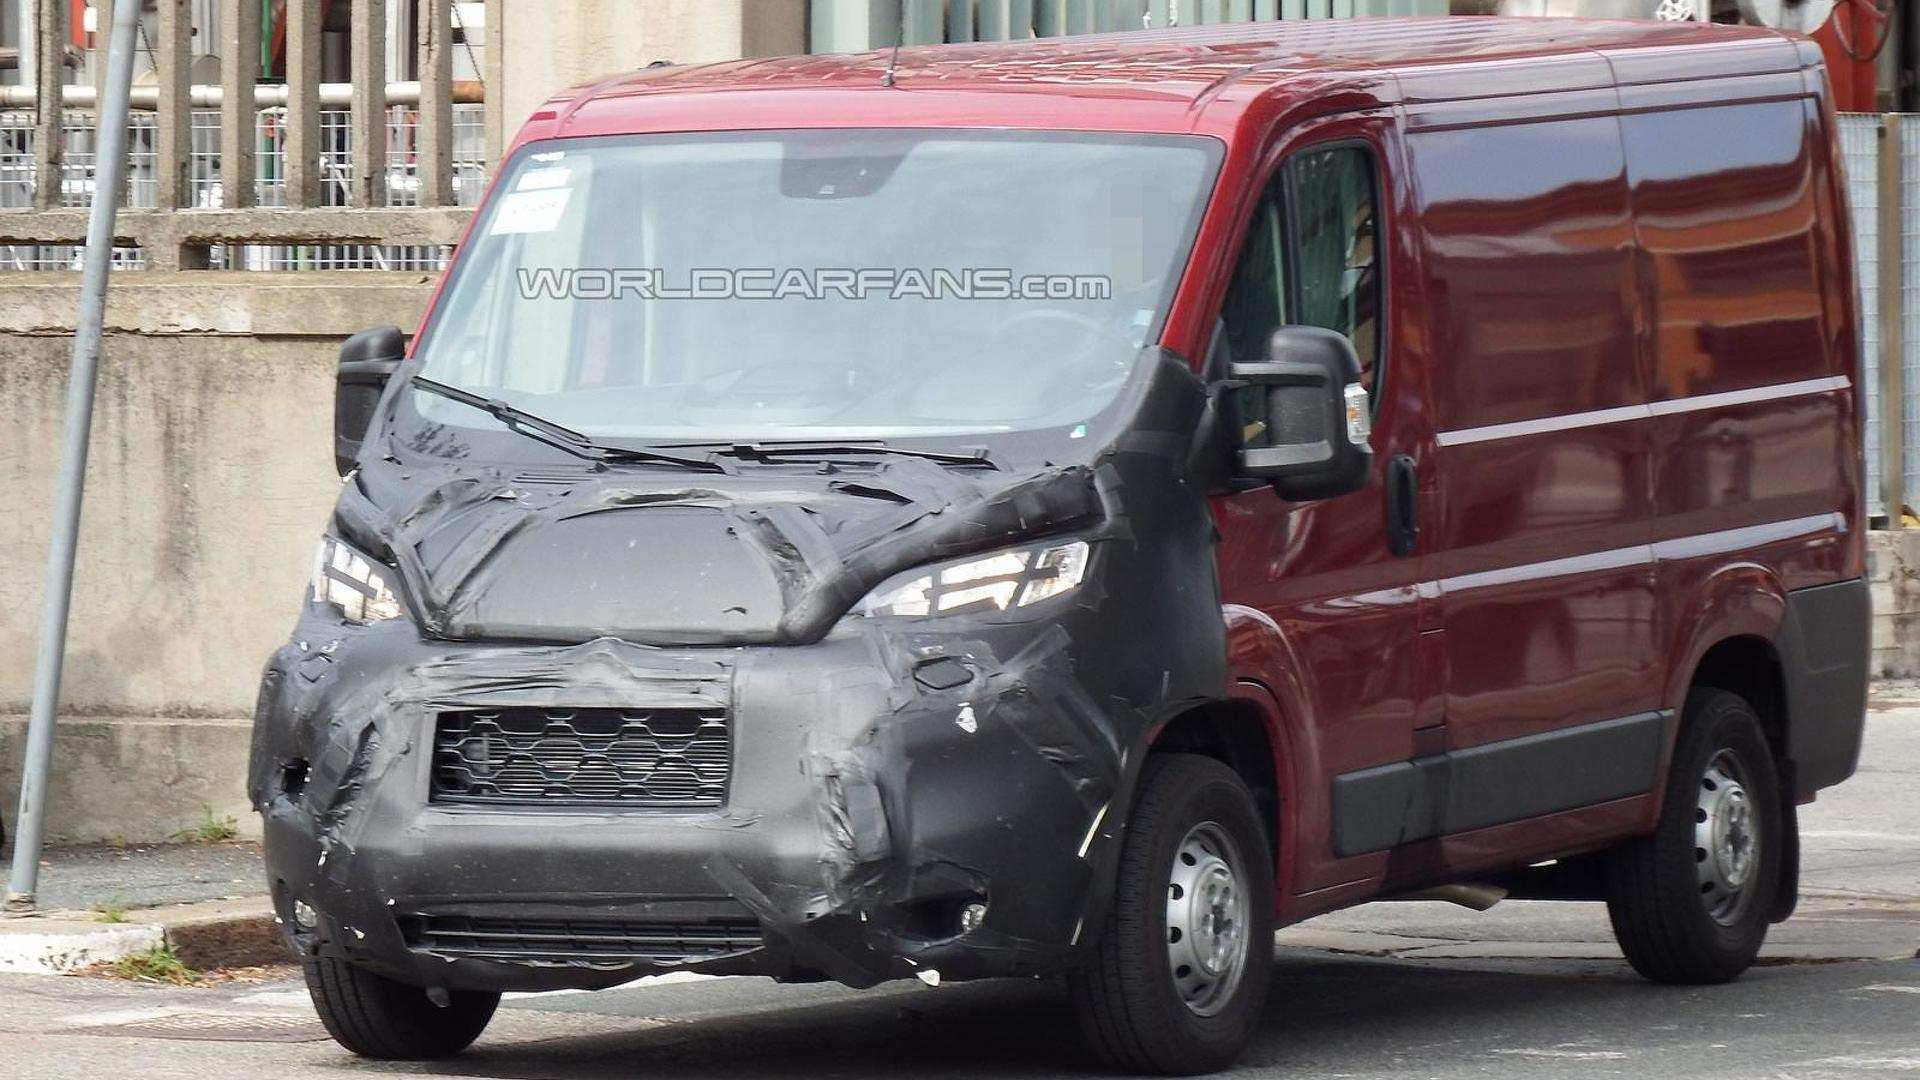 36 New Peugeot Boxer 2020 Exterior And Interior